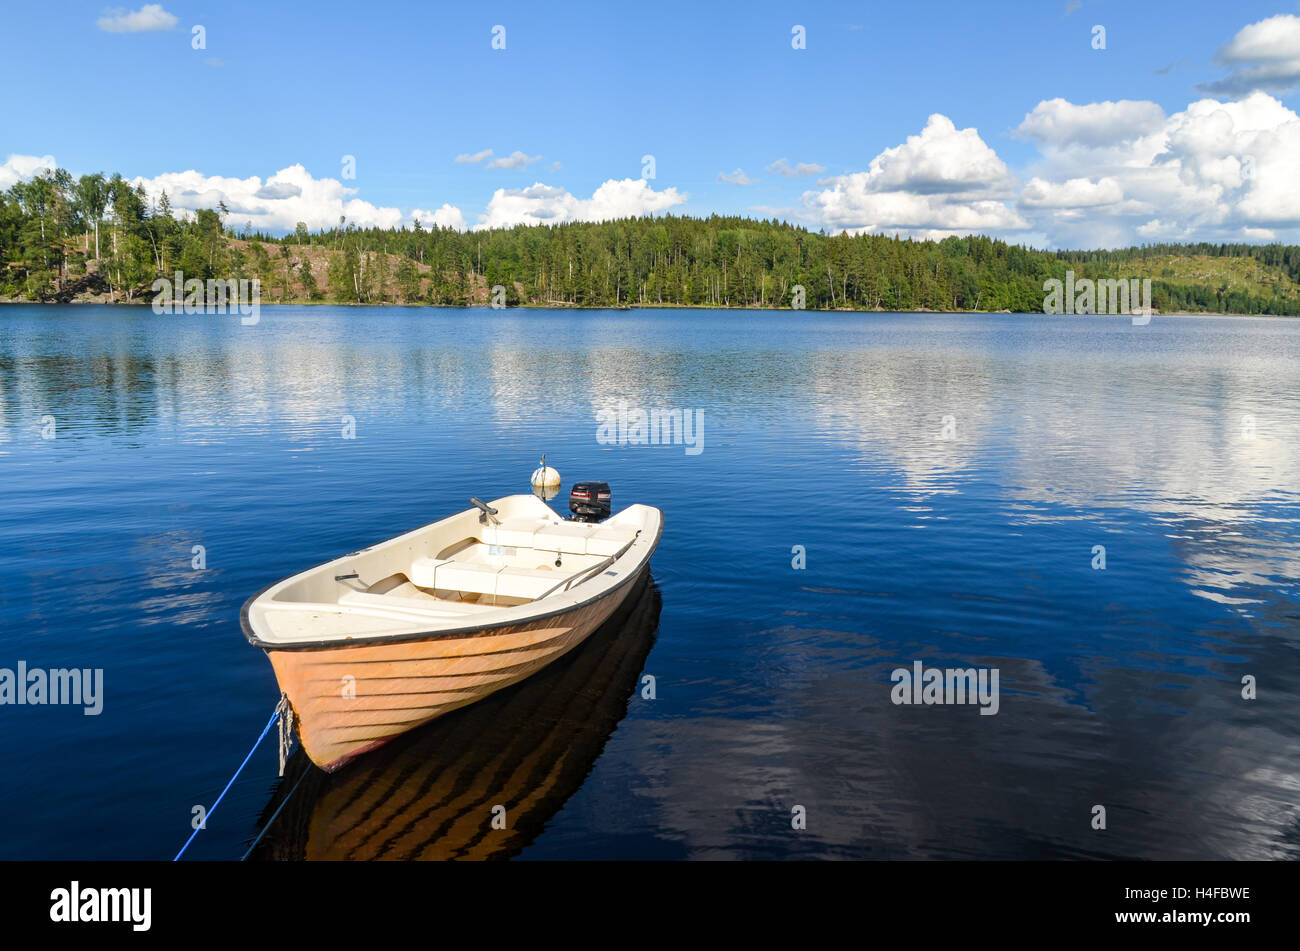 Outdoors in Sweden: boat on a lake near Hedekas - Stock Image